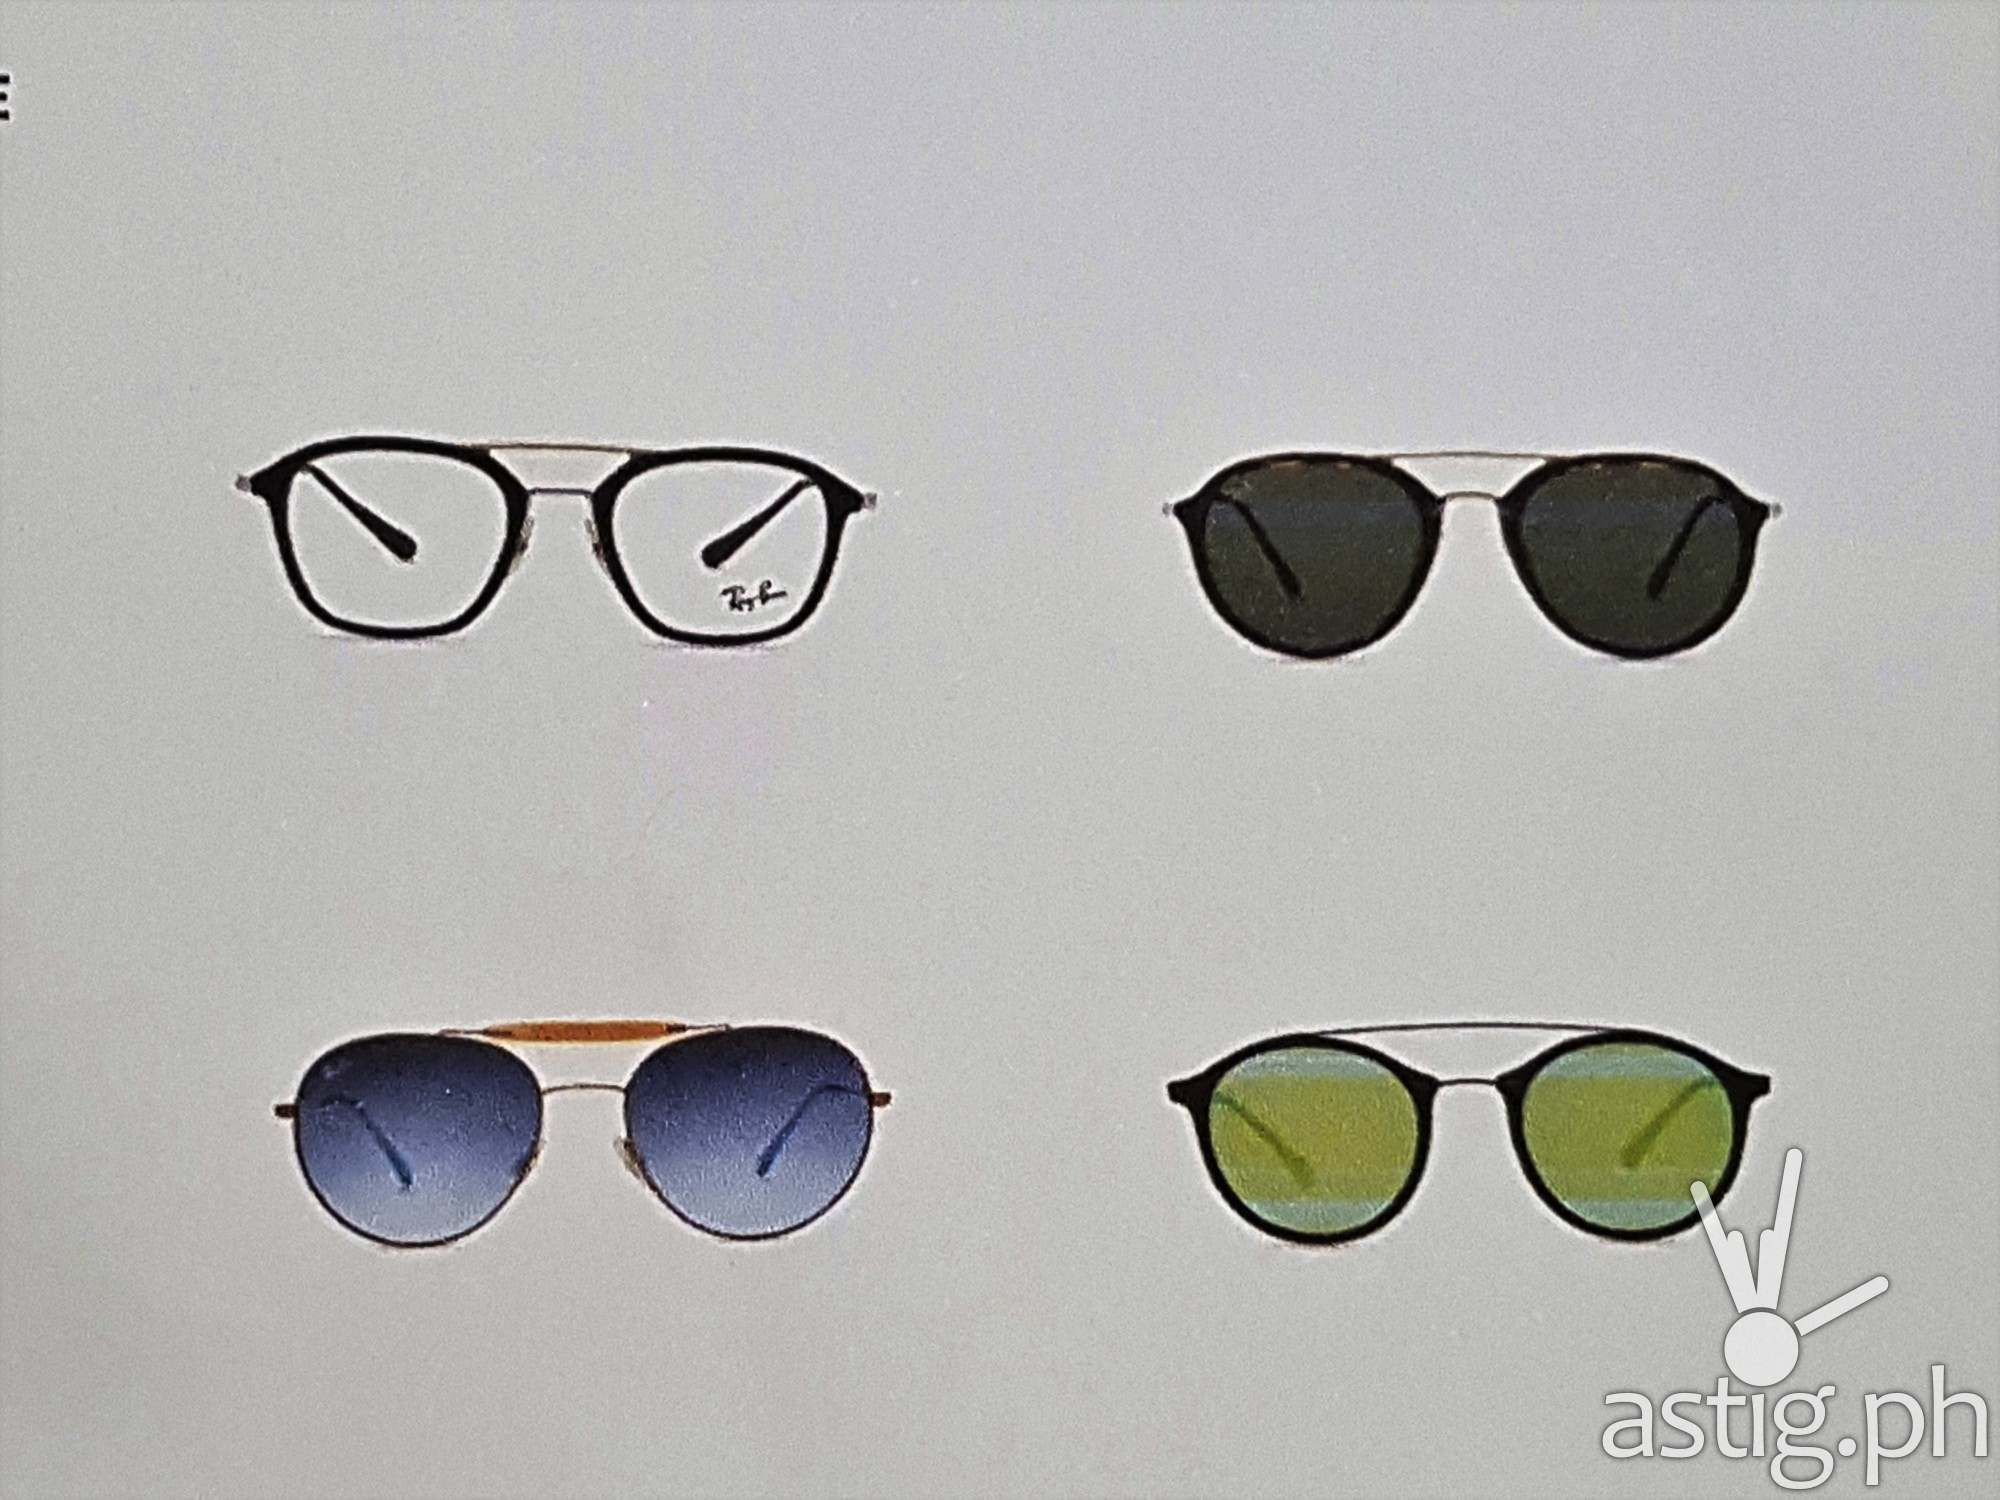 ray ban new shape round sunglasses  the flat lenses comes in three different shapes, namely round, oval and hexagonal. these shapes represents timelessness and is now featuring flat crystal